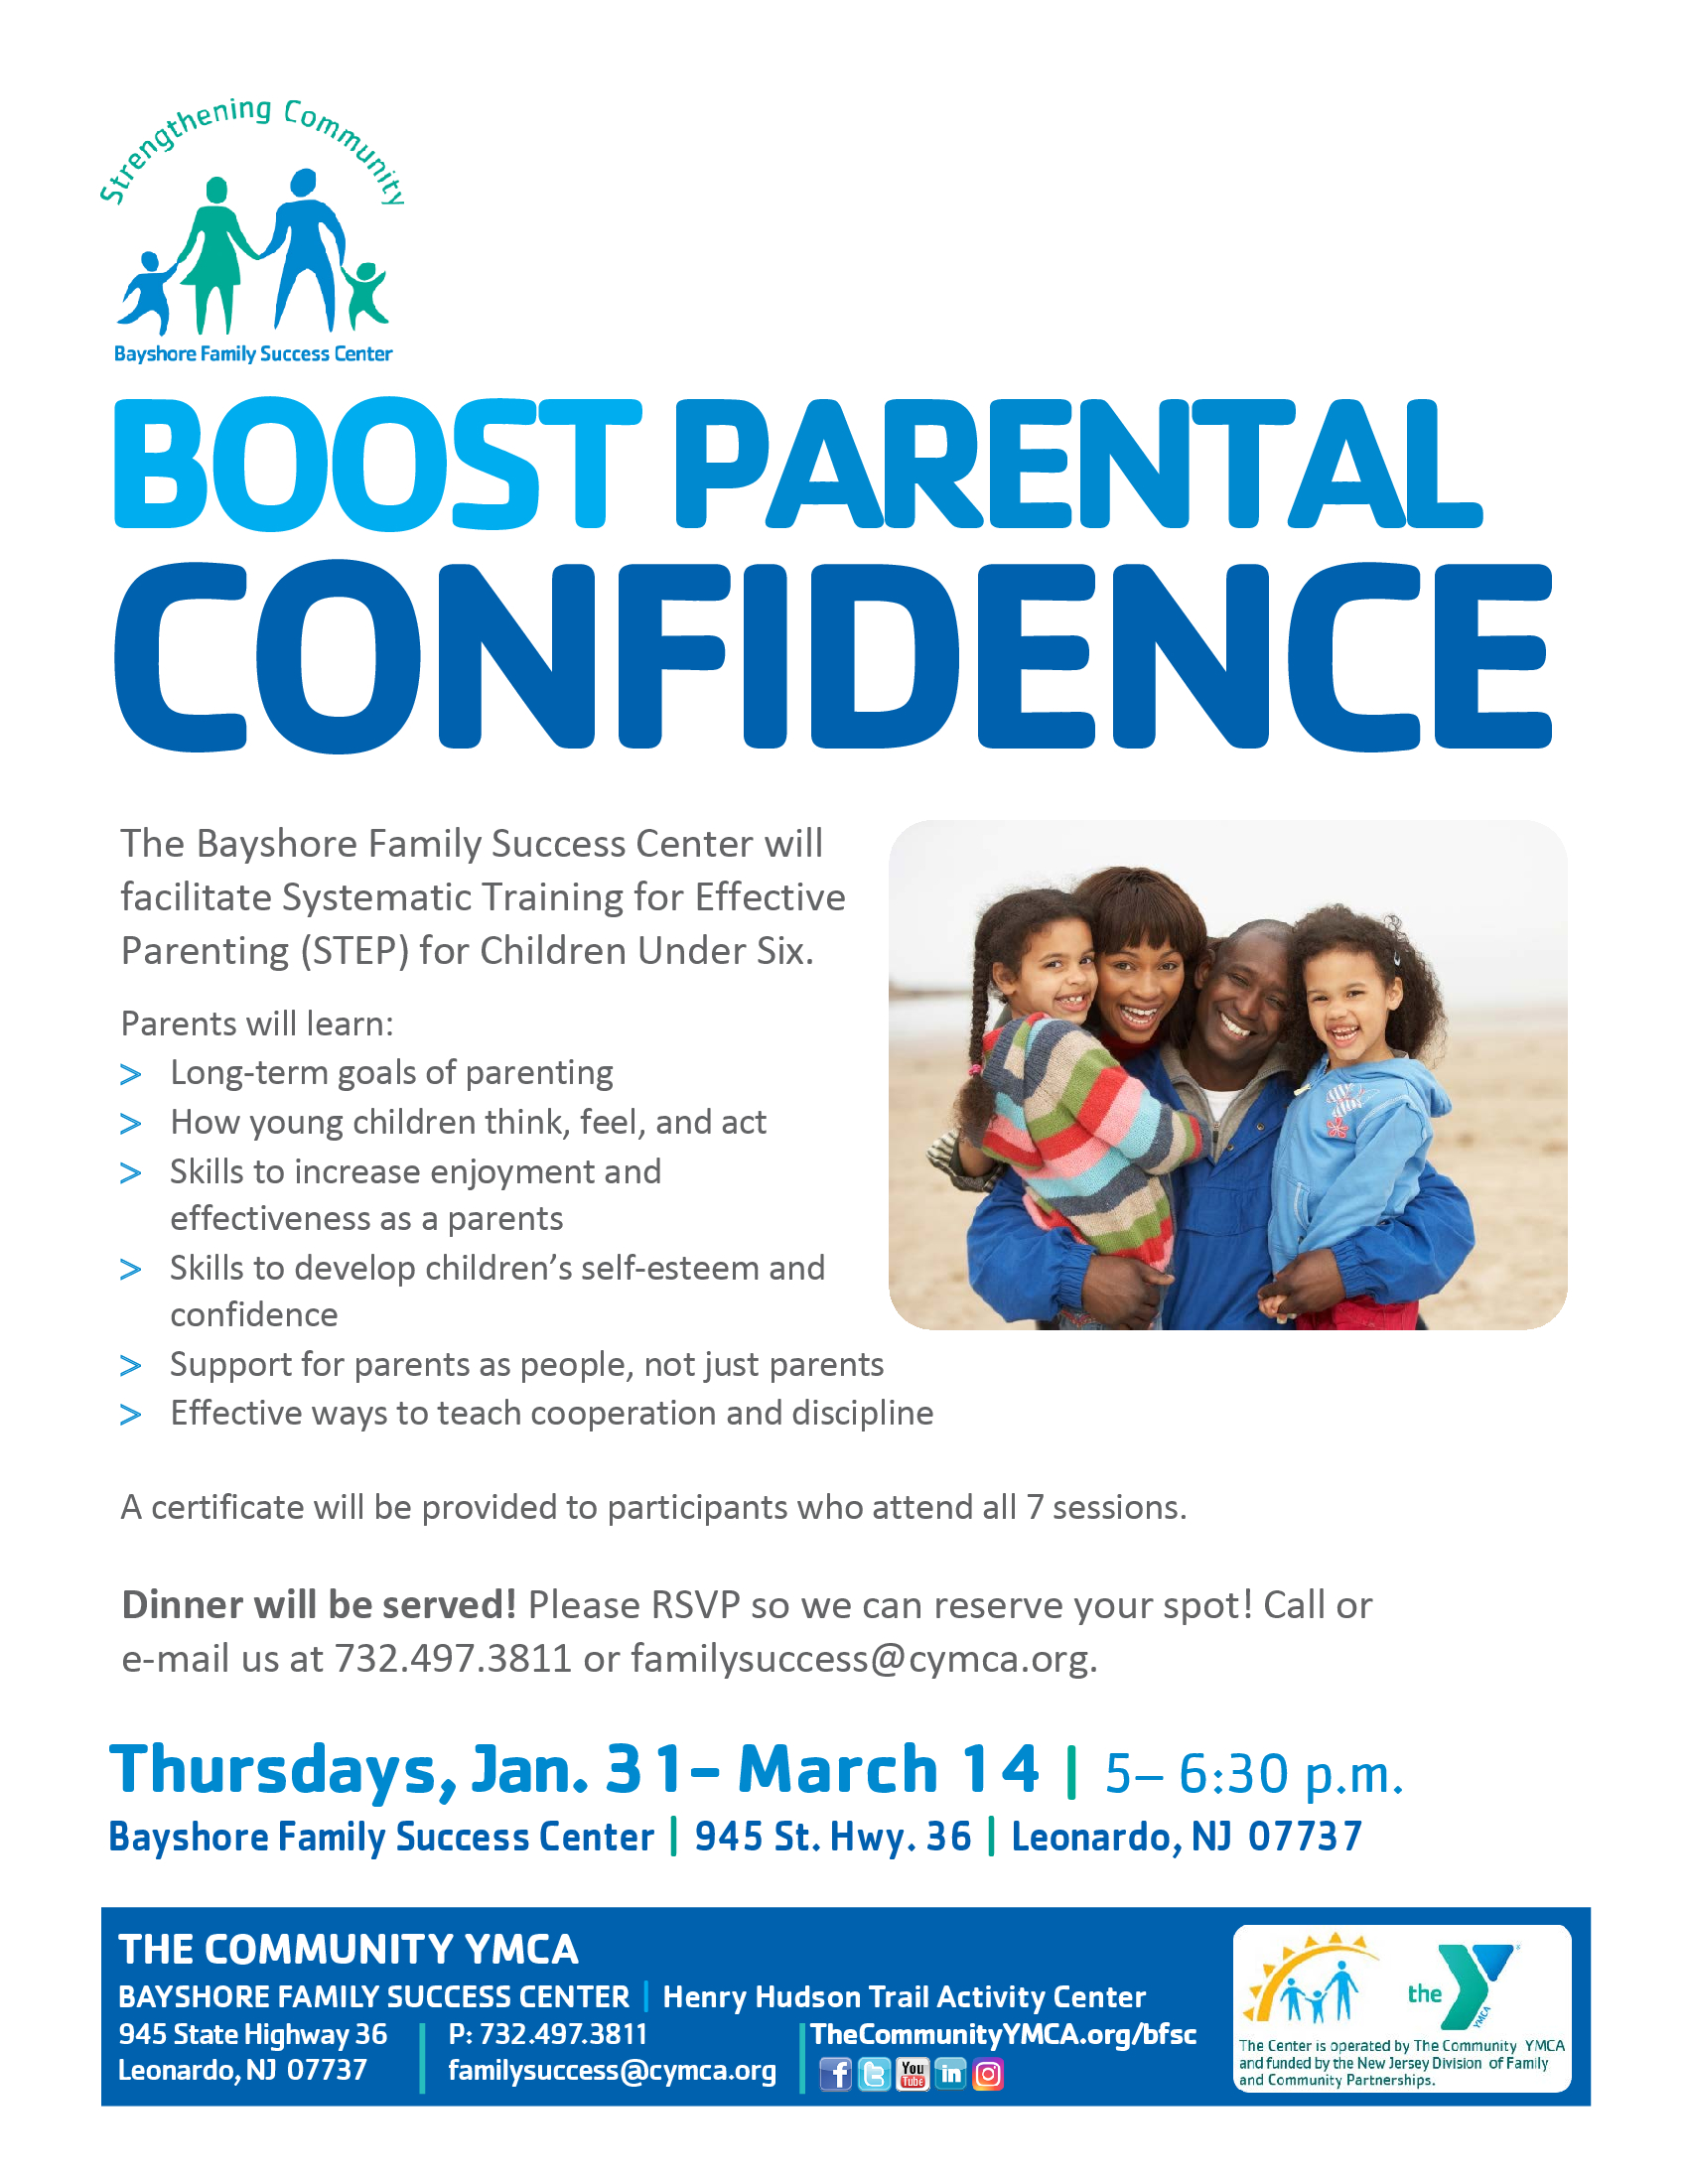 YMCA Boost Parent Confidence